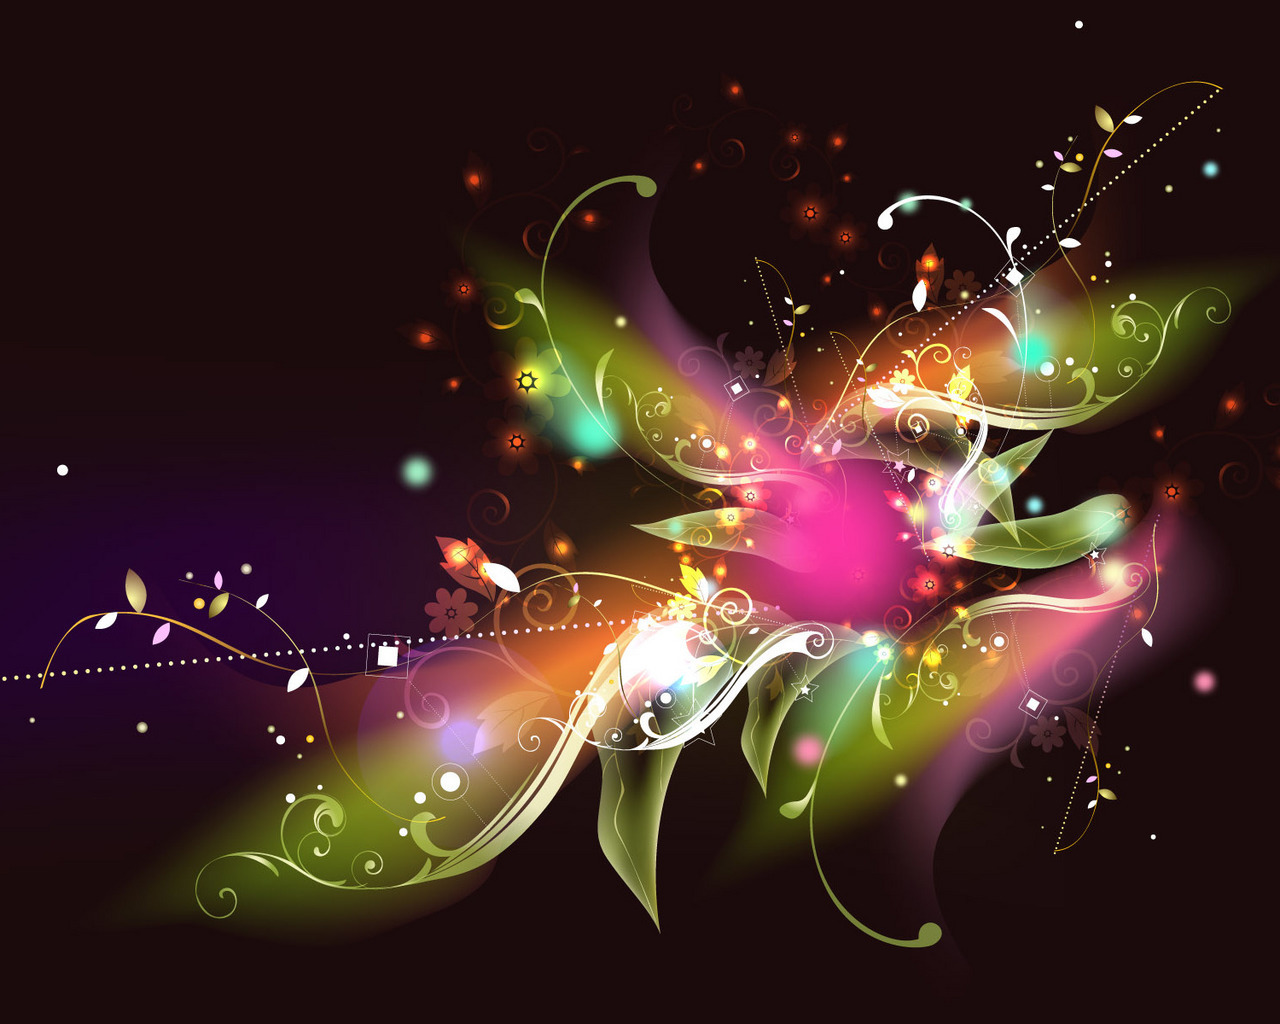 12606 download wallpaper Abstract, Background screensavers and pictures for free